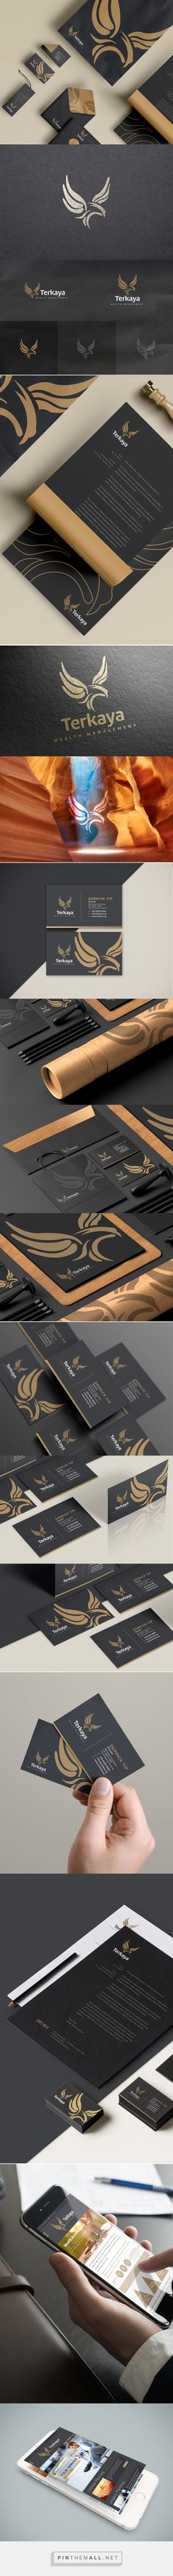 Terkaya wealth management branding by lemongraphic